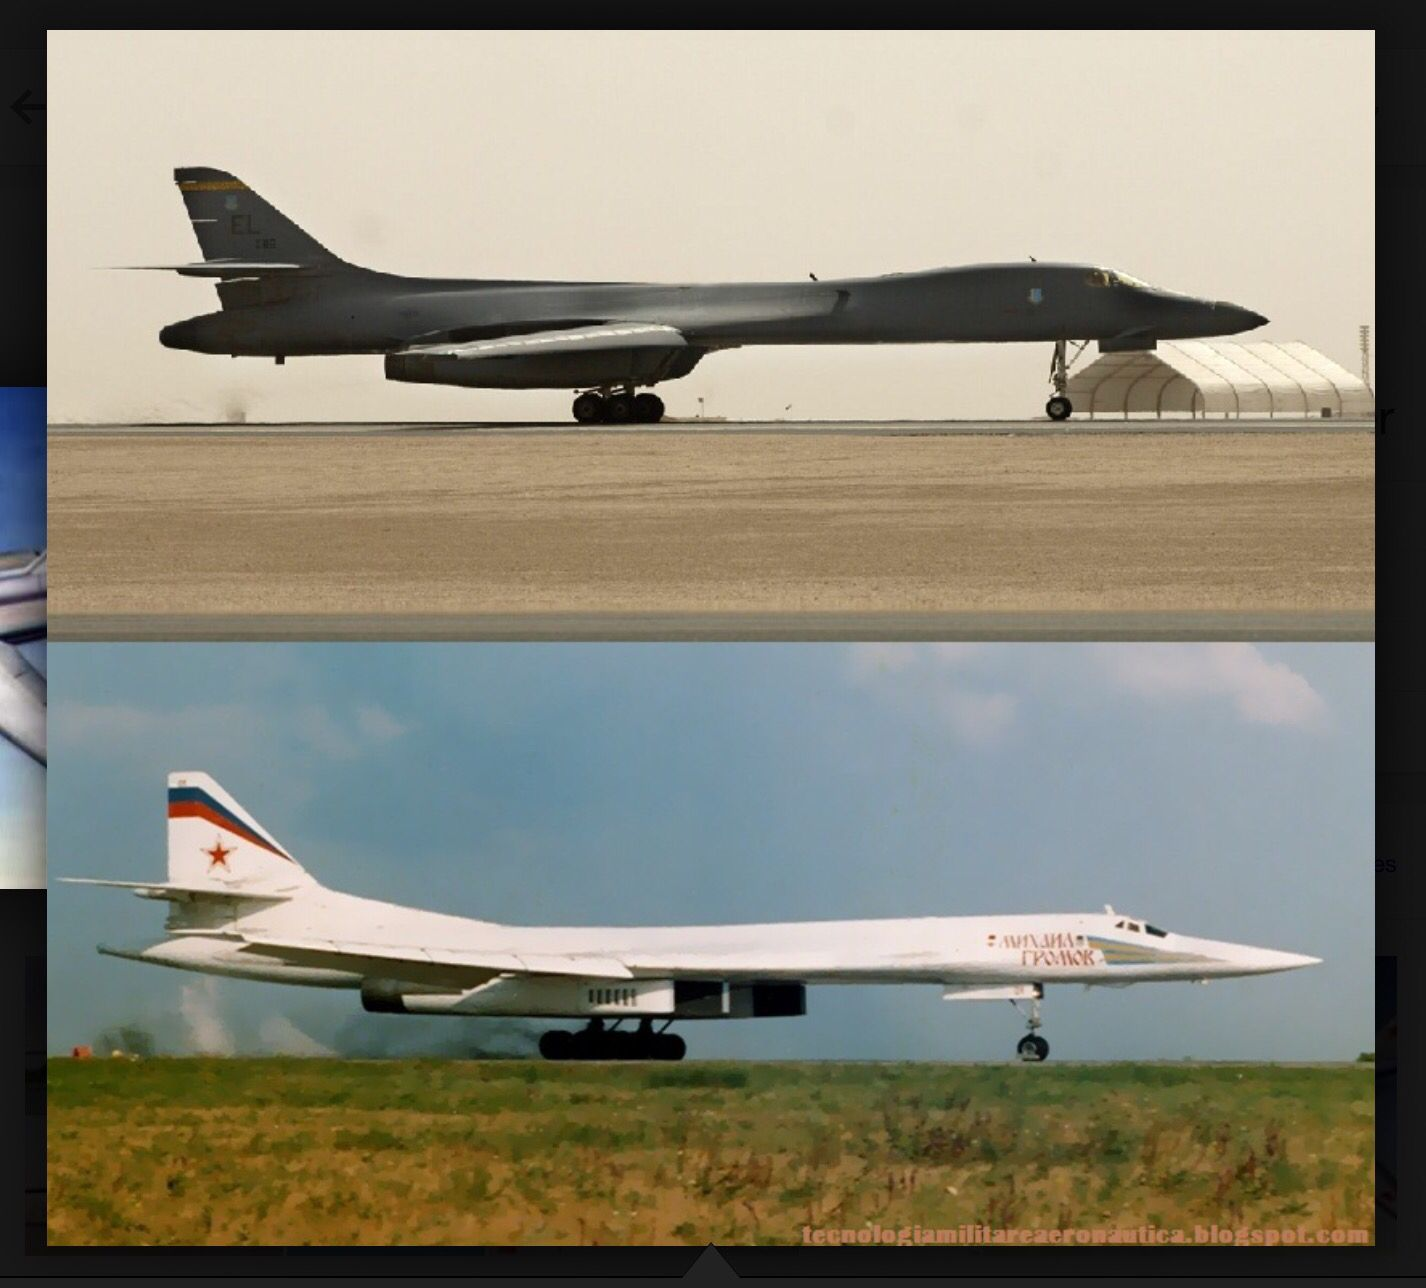 US B-1B Lancer vs Russian Tu-160 Blackjack | Airplanes ... B1 Lancer Vs Tu 160